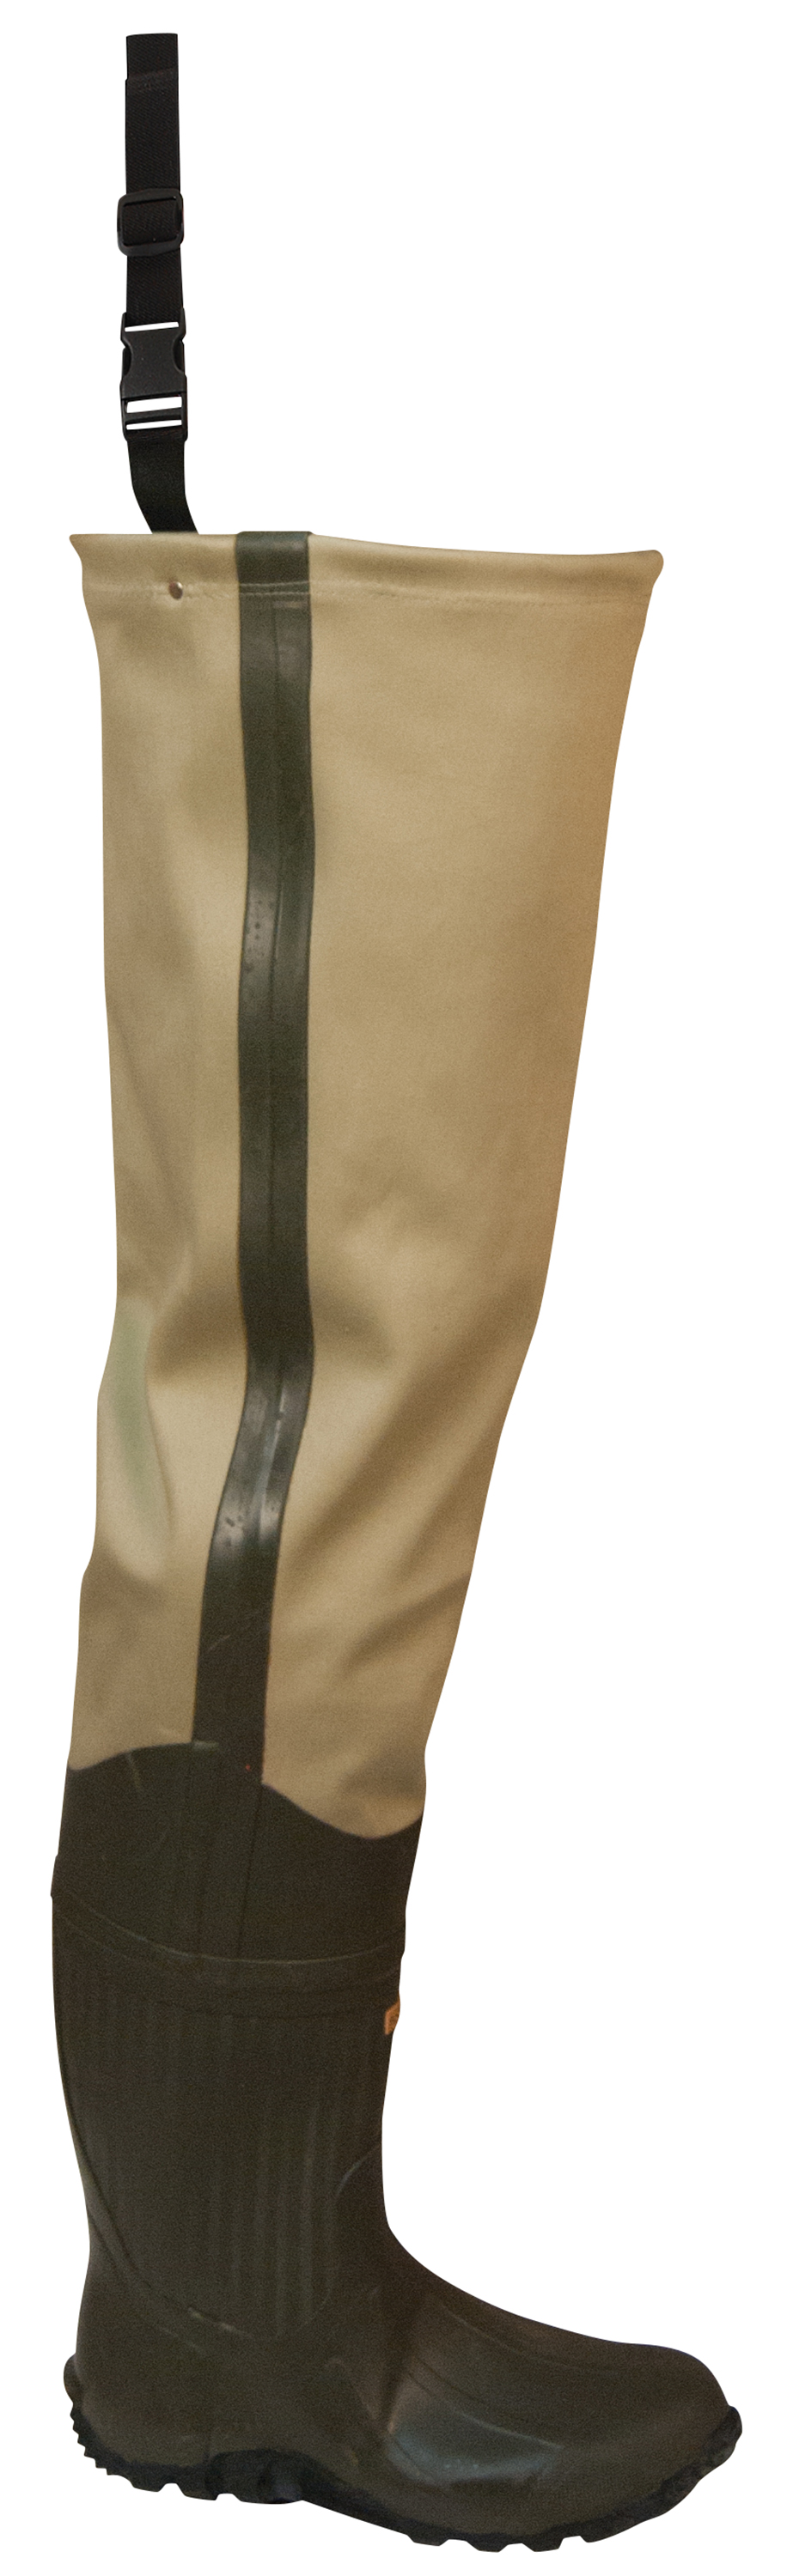 Frogg Toggs Bull Frogg 3-ply Canvas Hip Wader Felt by Frogg Toggs